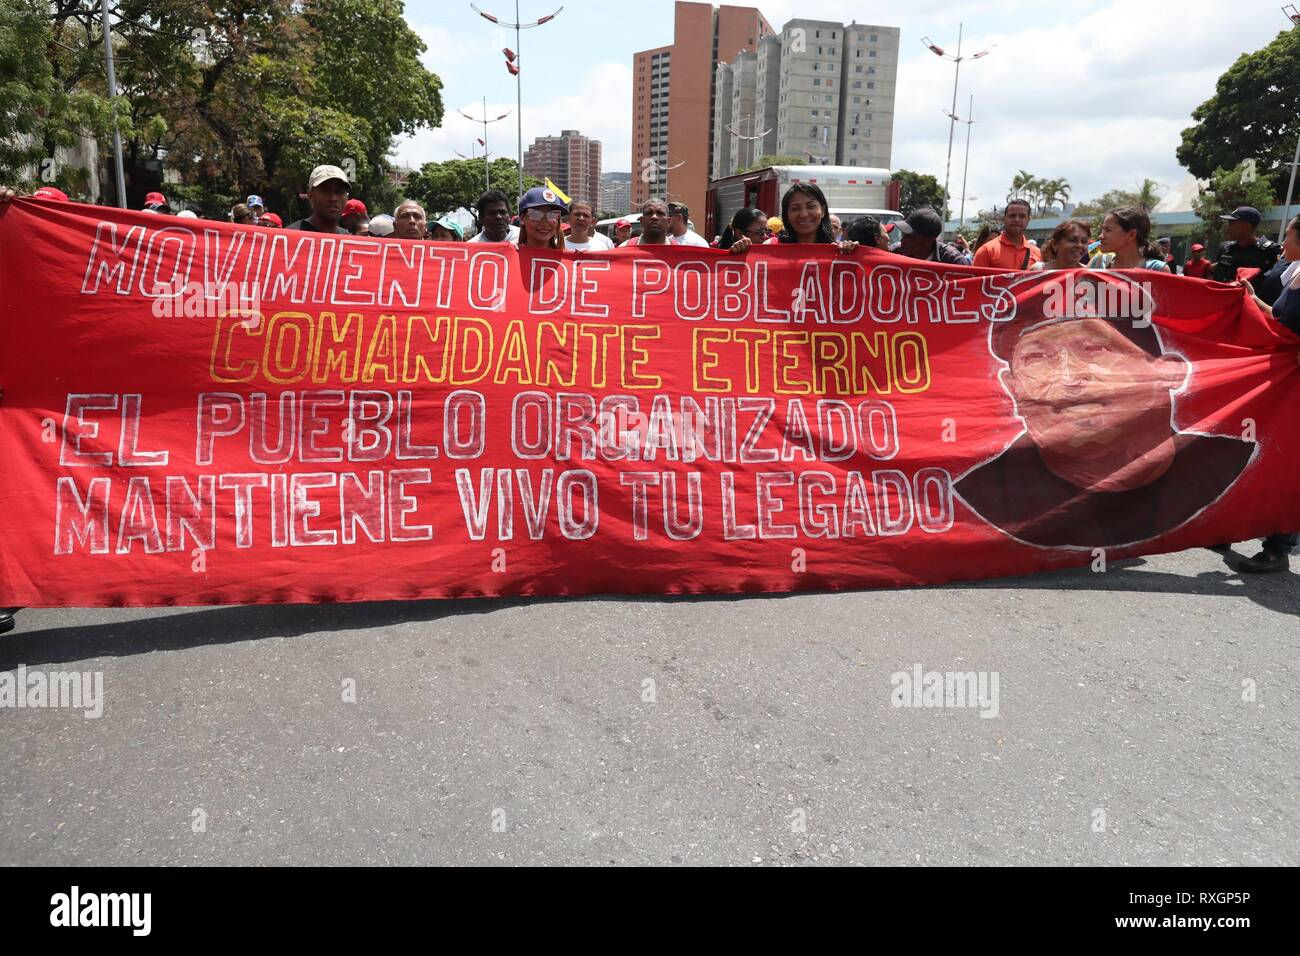 Caracas, Venezuela. 09th Mar, 2019. Hundreds of people participate in an official march against imperialism and electric sabotage, in Caracas, Venezuela, 09 March 2019. Credit: Raul Martinez/EFE/Alamy Live News - Stock Image